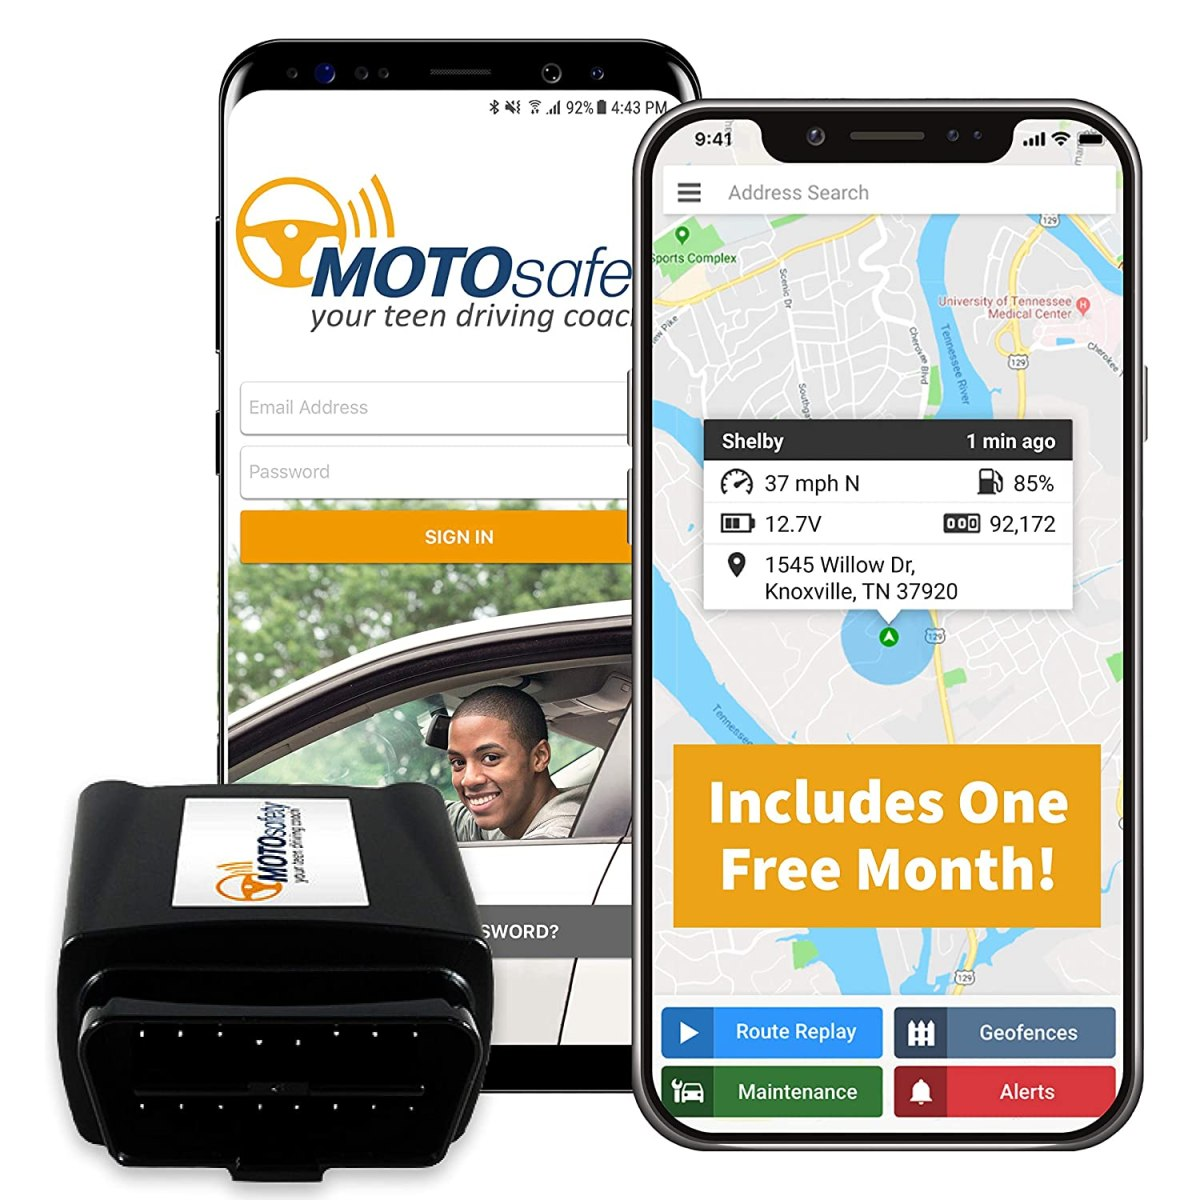 Best Car Trackers Reviews  Car Tracker - MOTOsafety OBD GPS Vehicle Tracker Device with Phone App